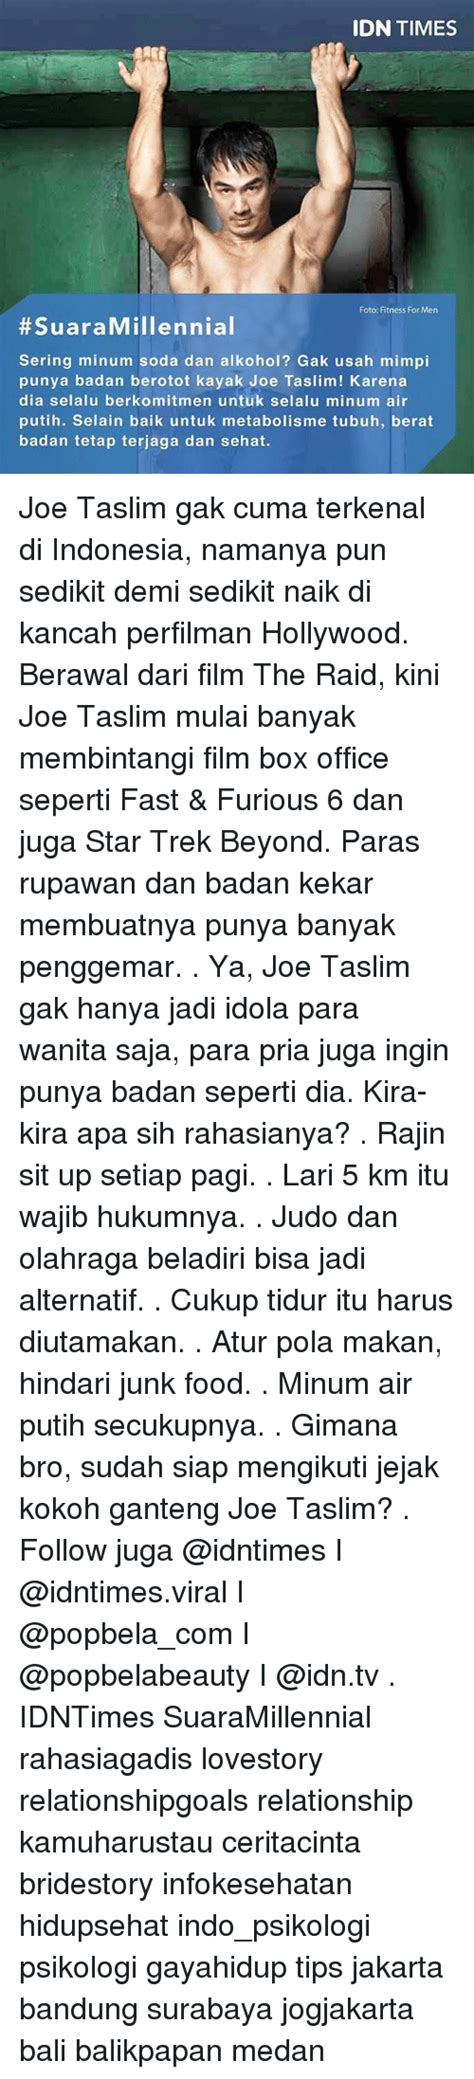 film psikologi recommended 25 best memes about star trek beyond star trek beyond memes